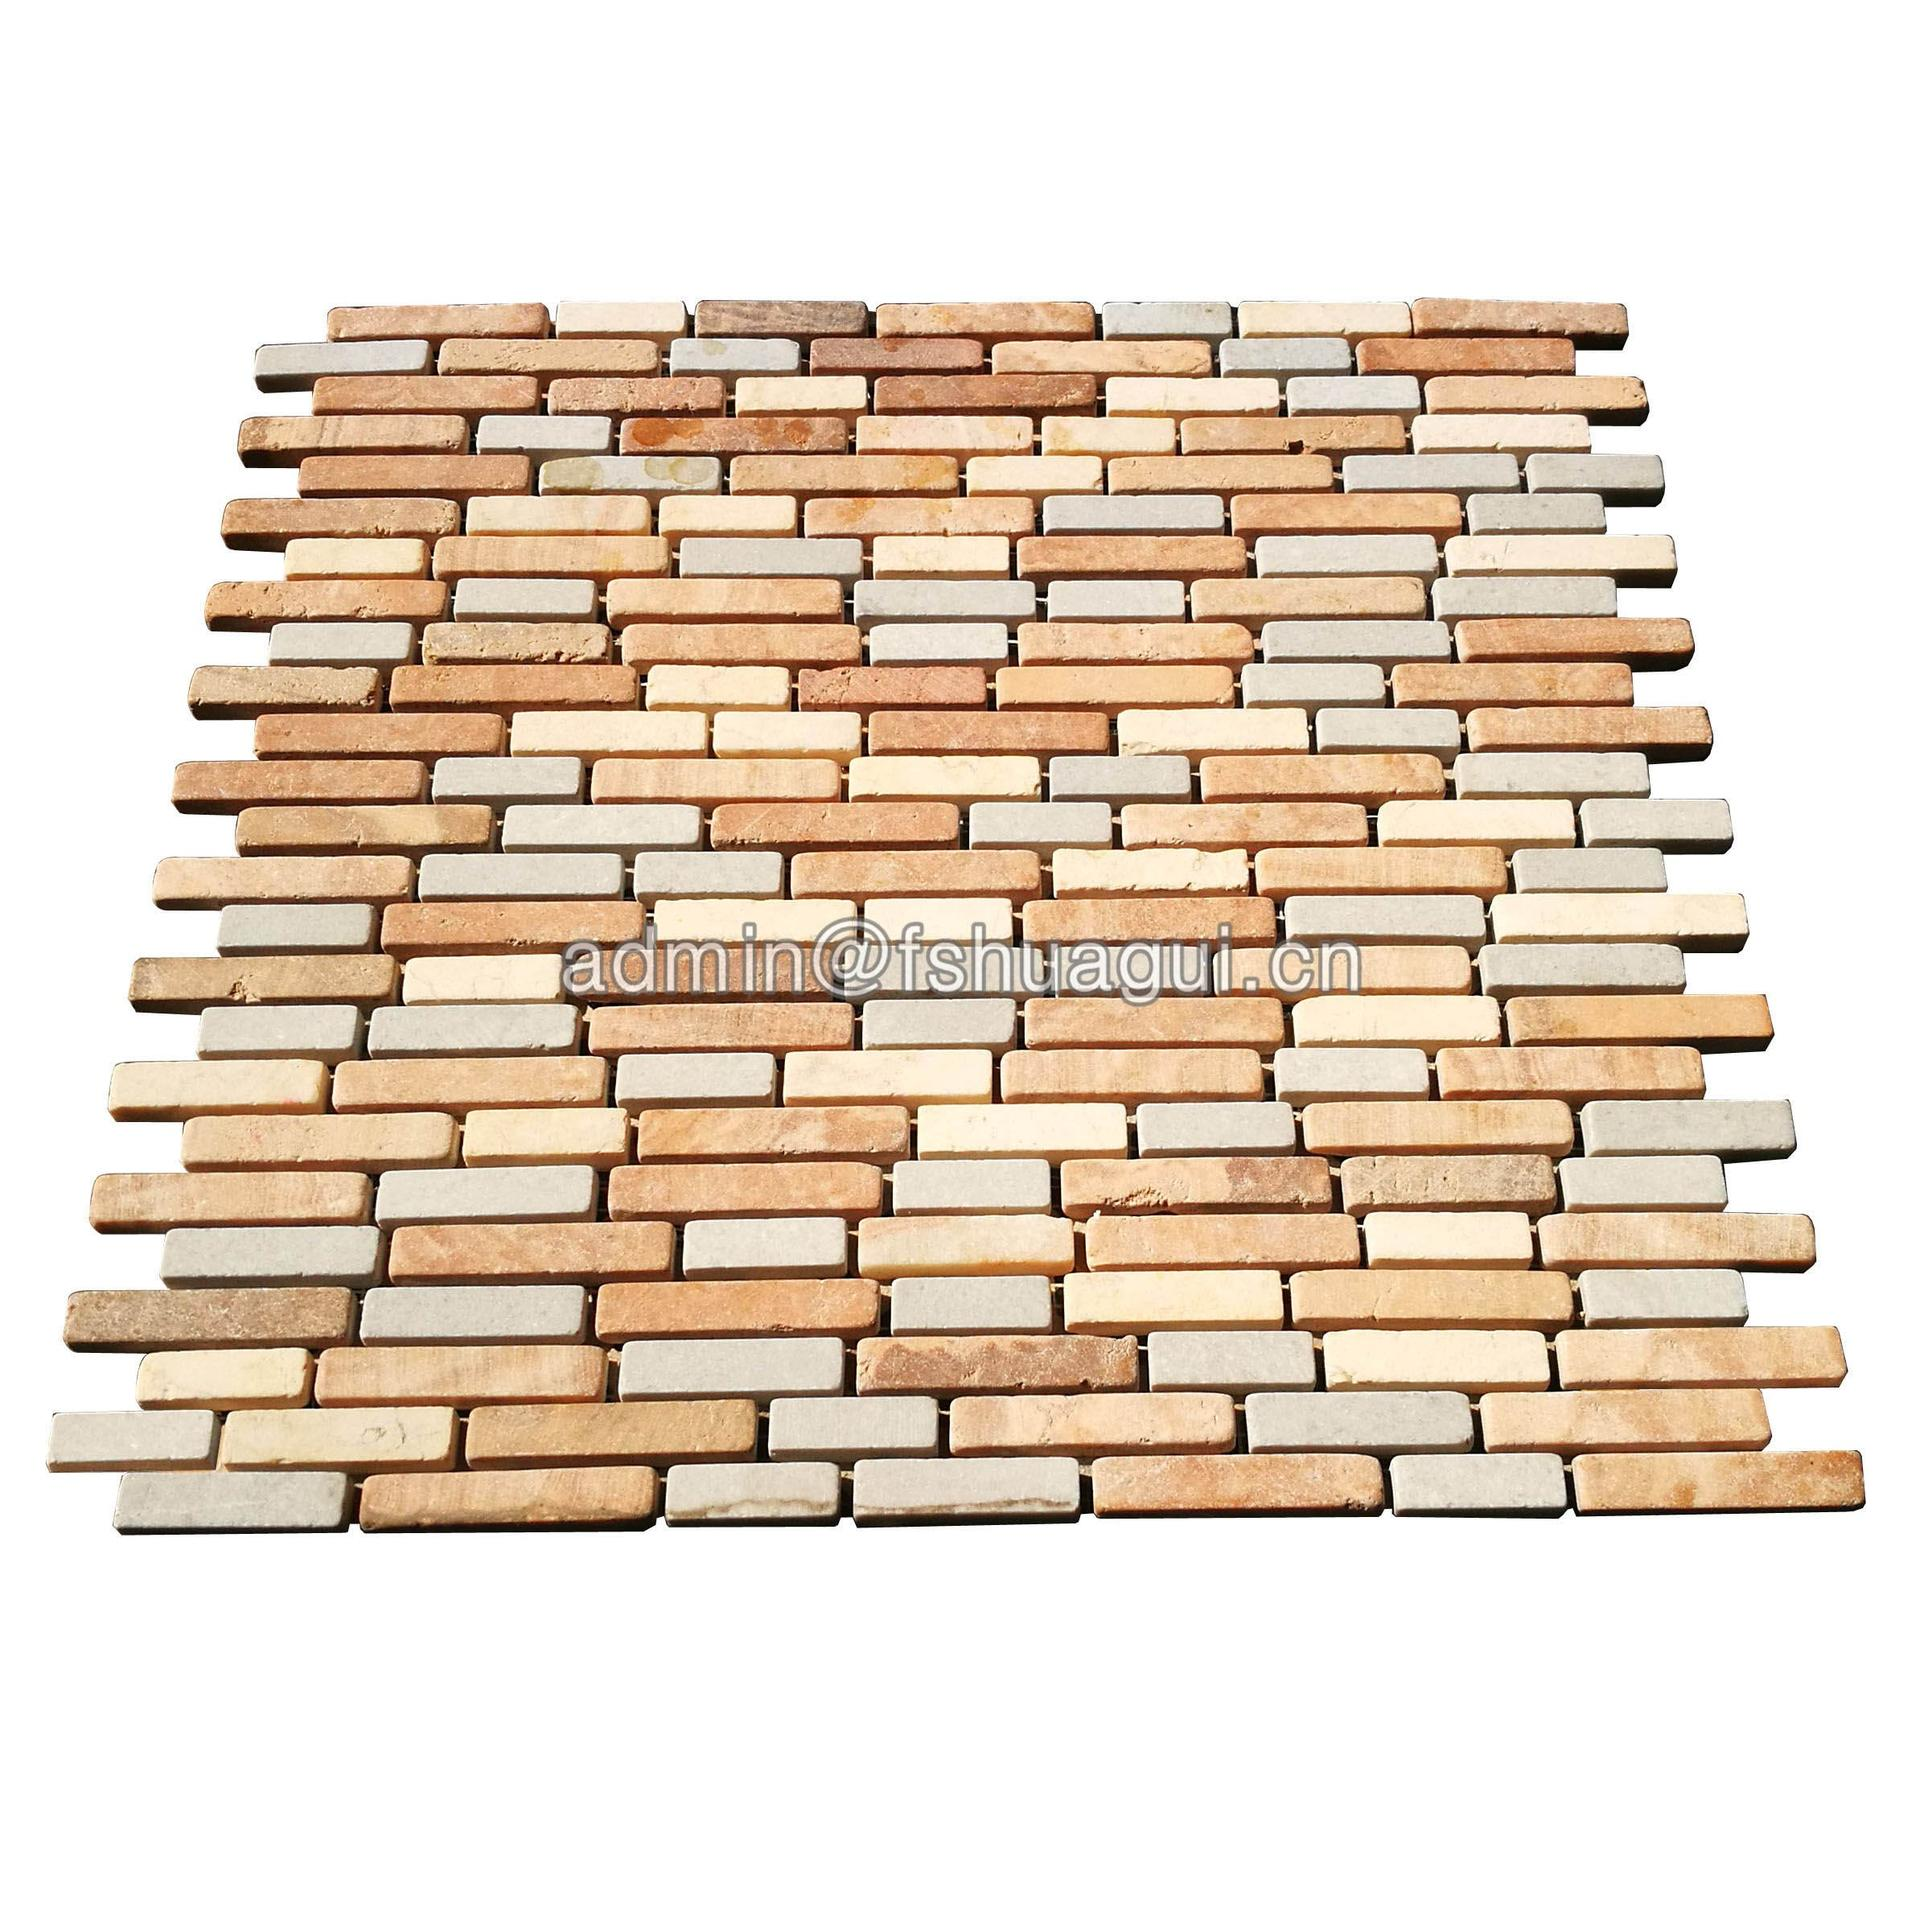 China supply linear stone mosaic tile for interior decoration